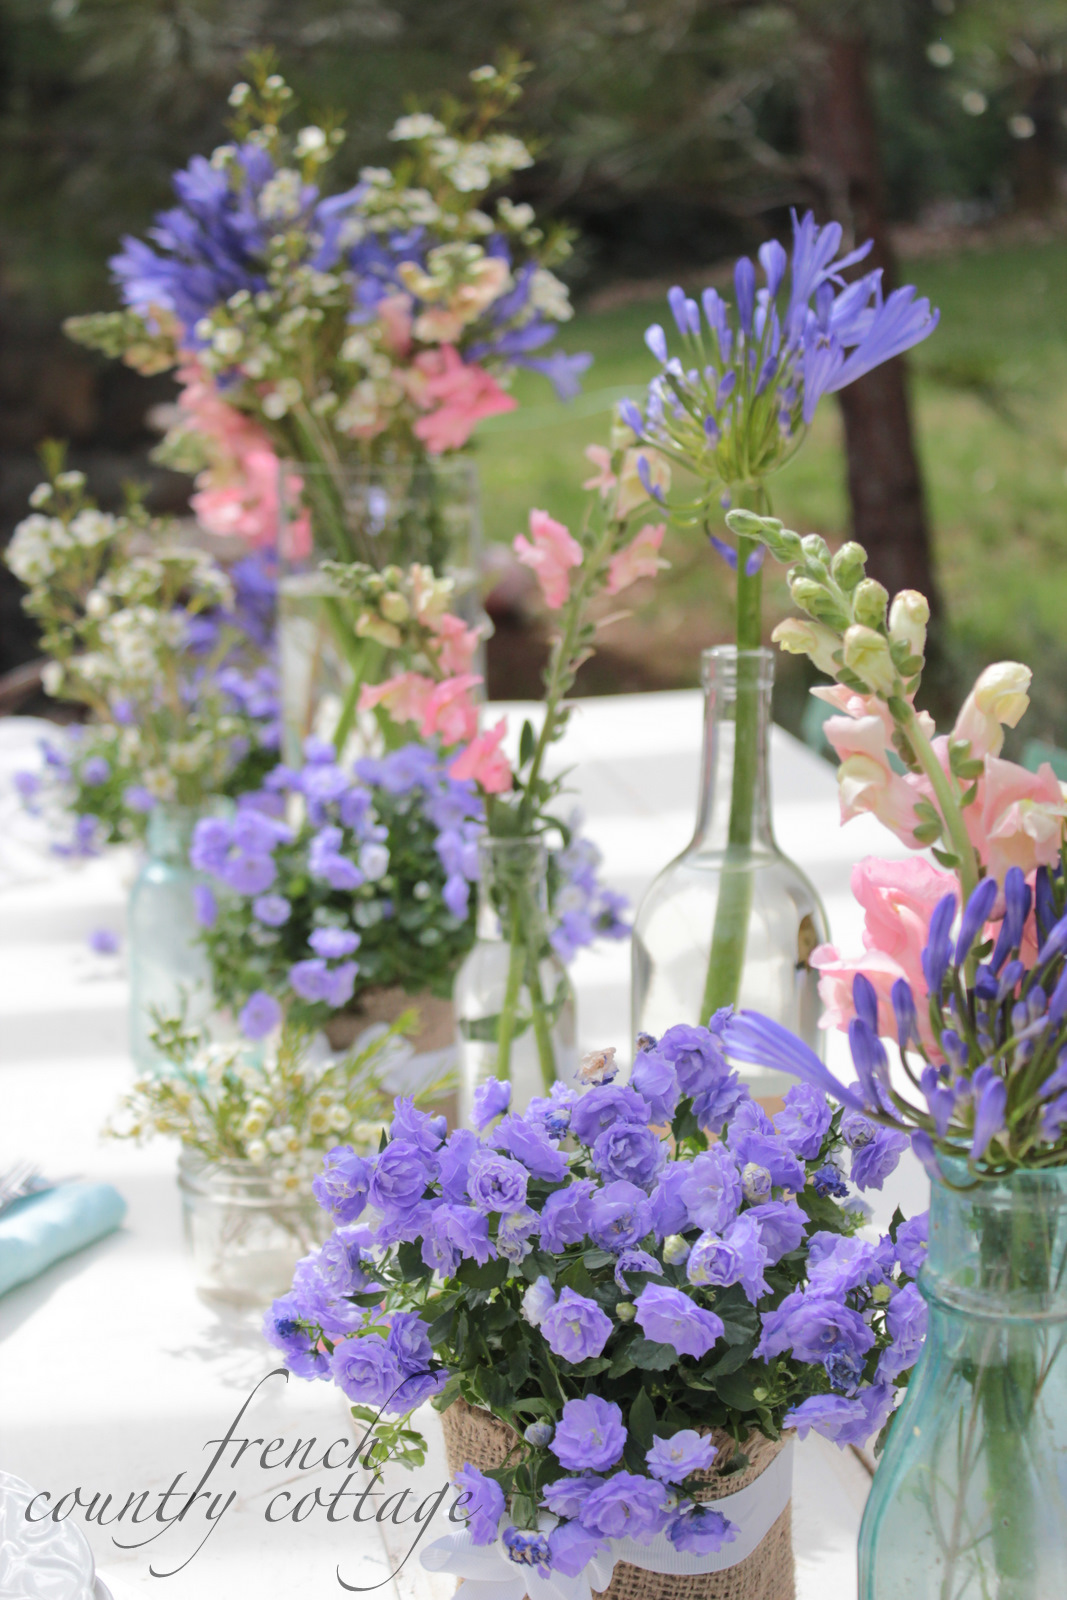 Setting a Simple Table FRENCH COUNTRY COTTAGE